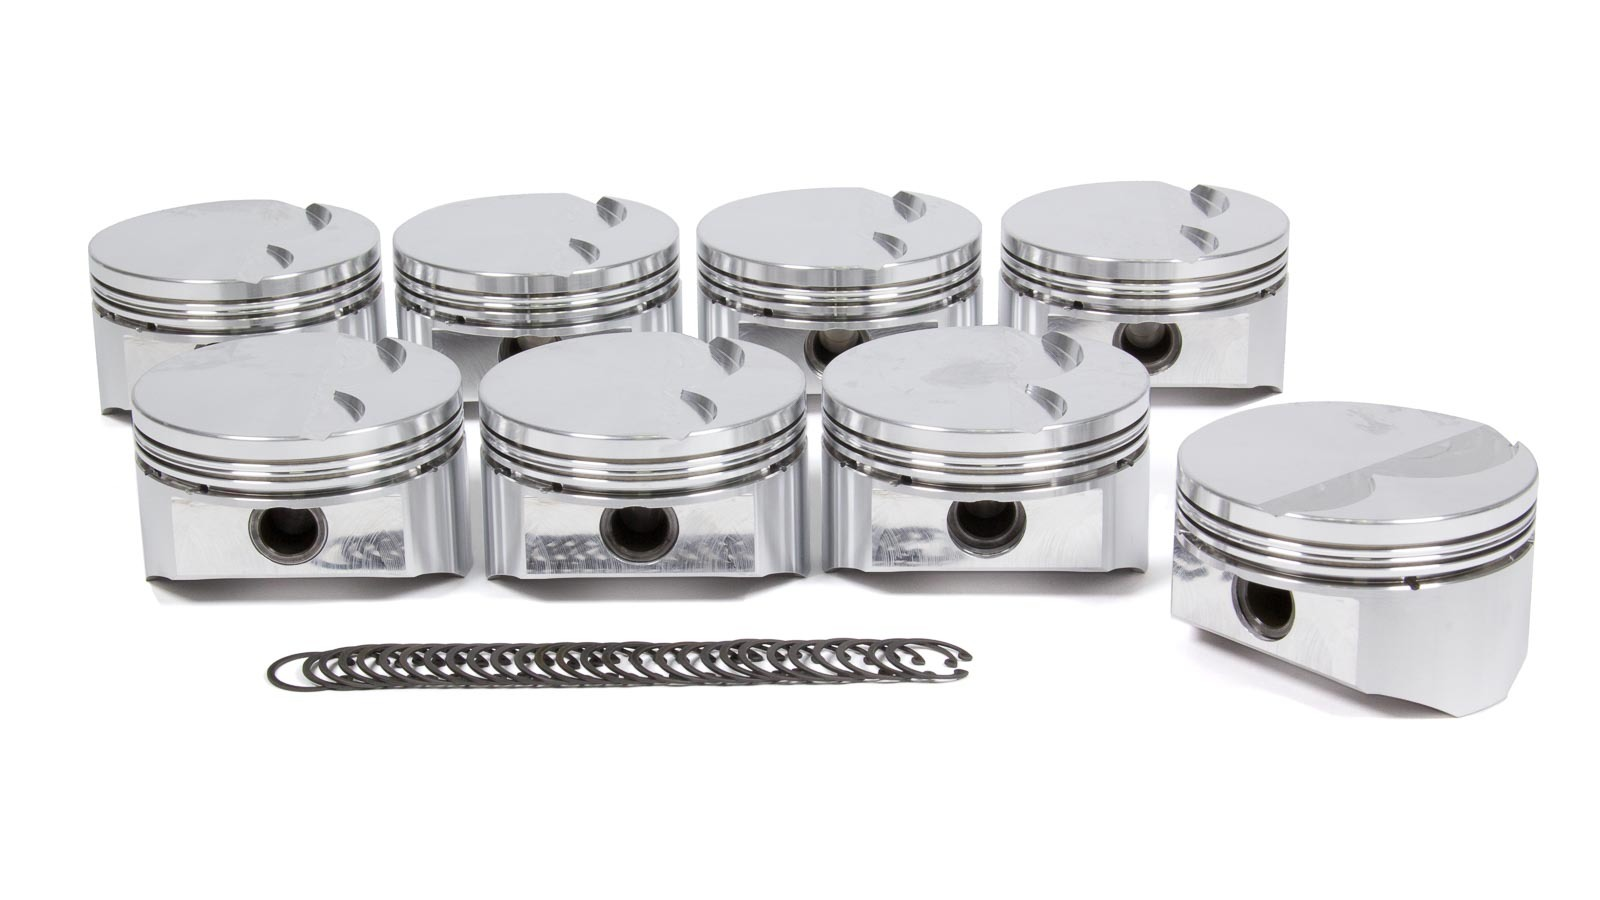 DSS Racing 1830BSX-4000 Piston, SX Series, Forged, 4.000 in Bore, 1.5 x 1.5 x 3.0 mm Ring Grooves, Minus 5.0 cc, GM LS-Series, Set of 8